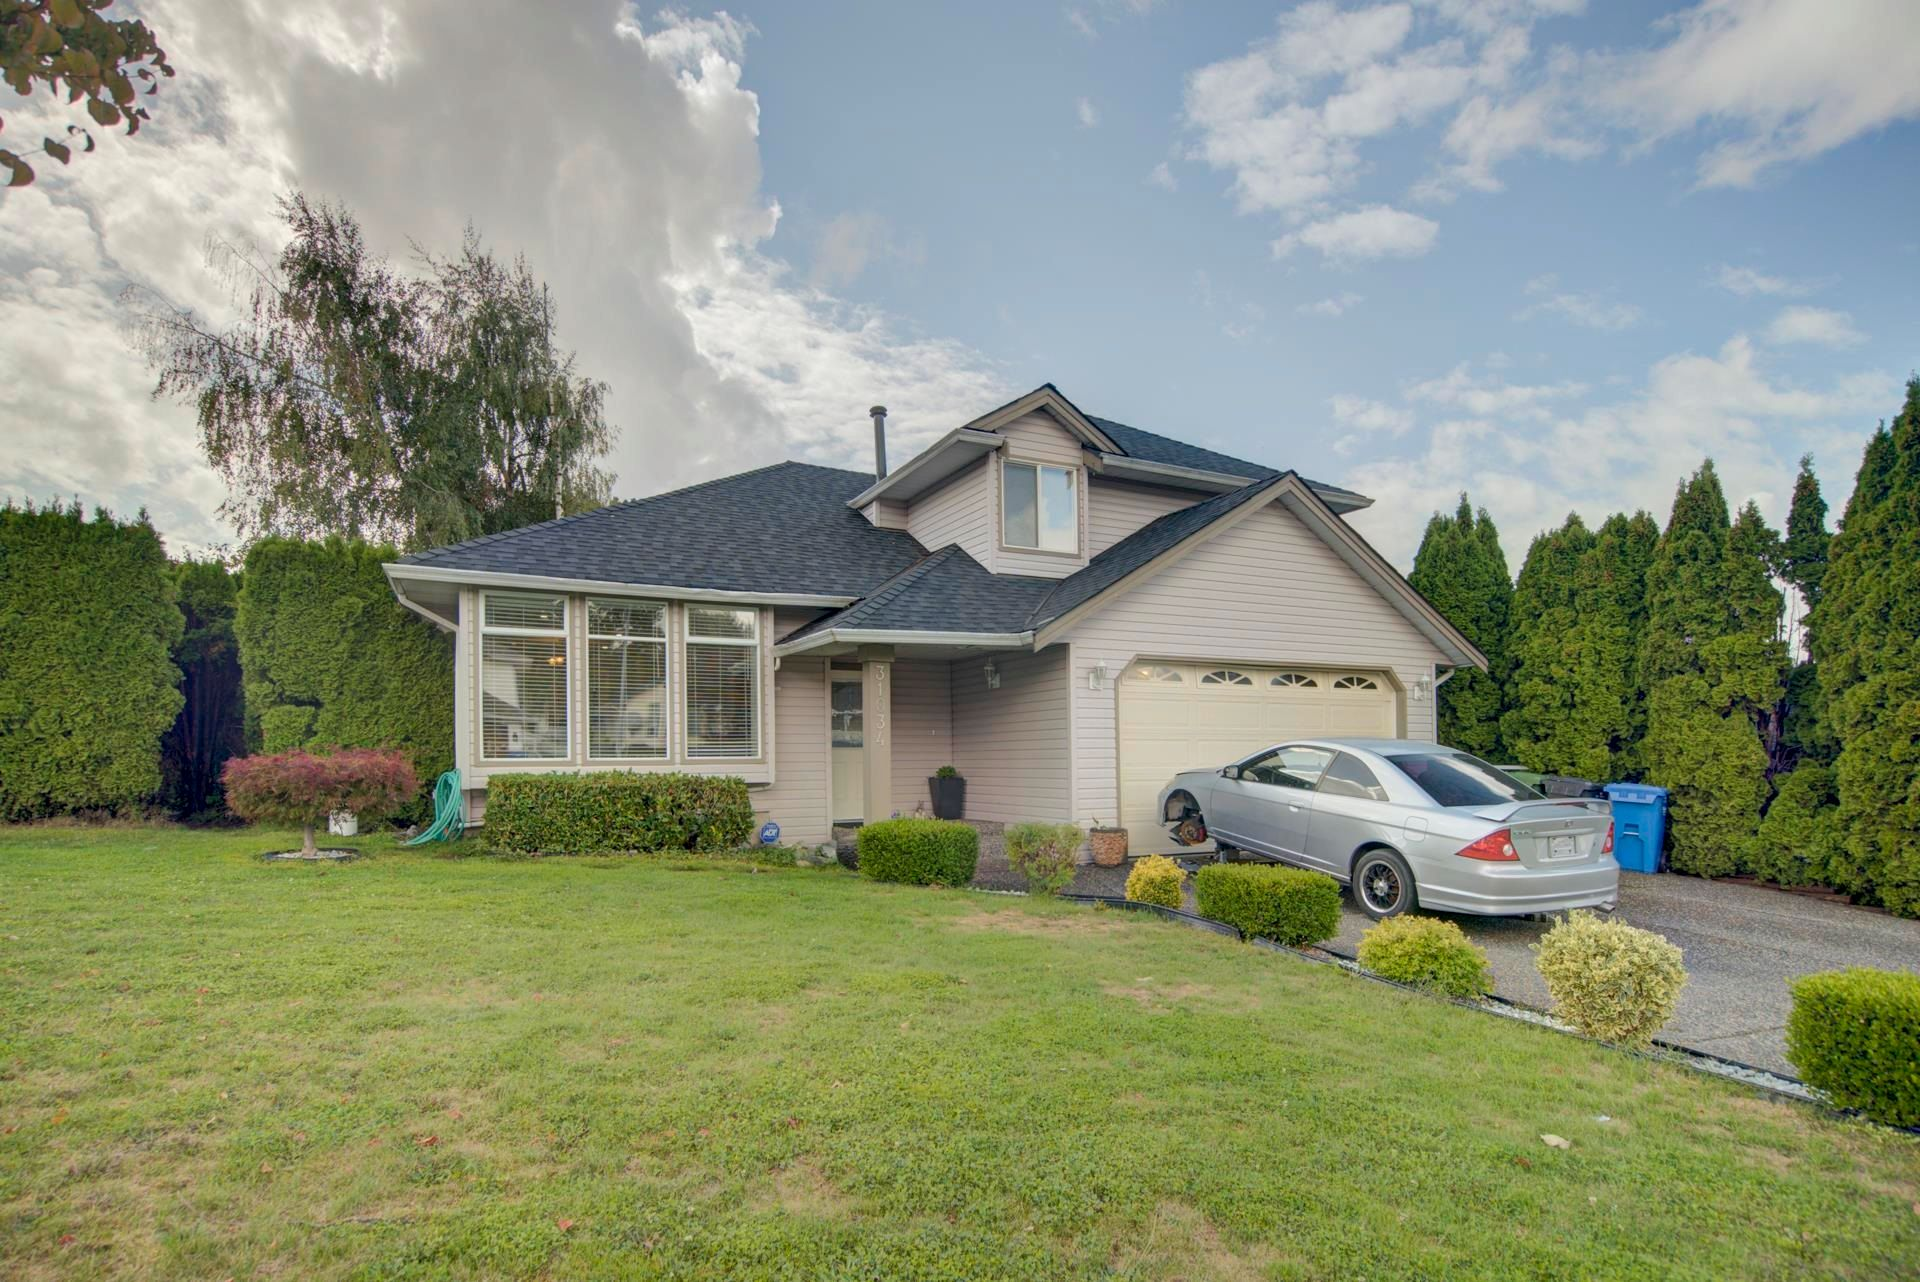 Main Photo: 31034 SIDONI Avenue in Abbotsford: Abbotsford West House for sale : MLS®# R2619617